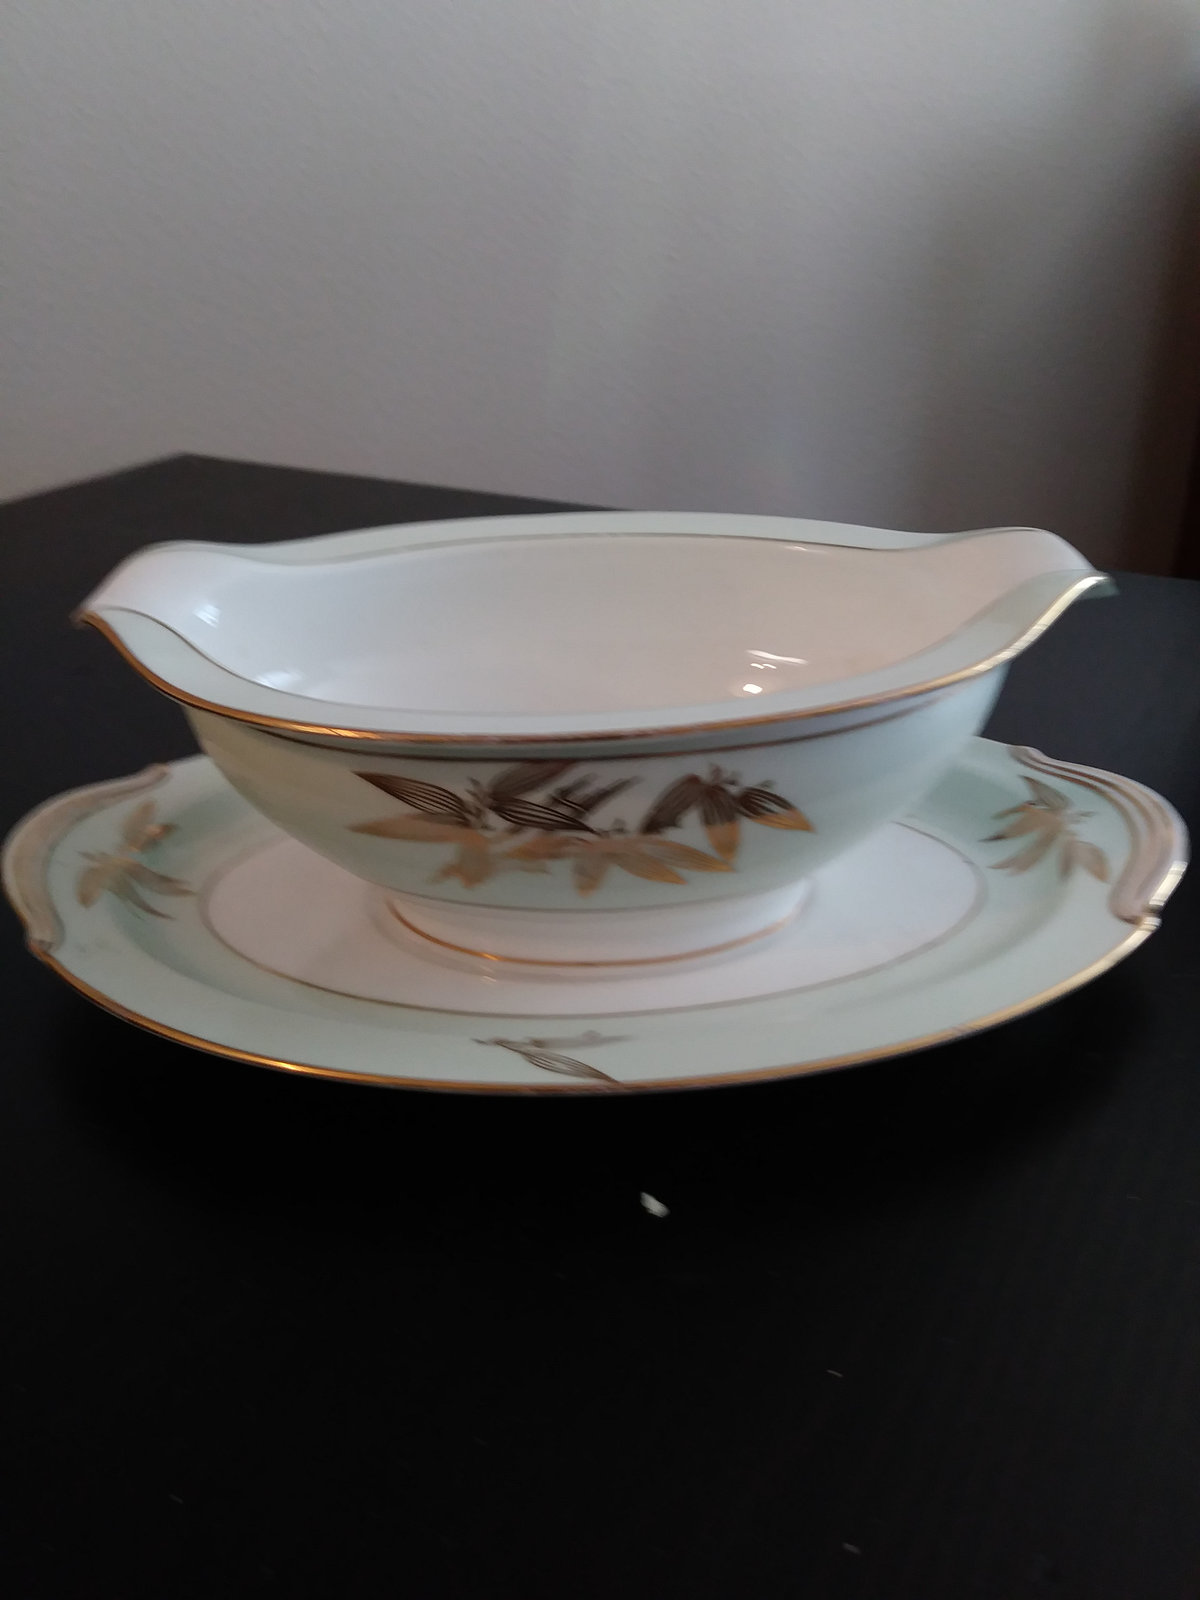 Vintage Gravy Boat Attached Plate Noritake China Made In Japan #5286 Alice Patte